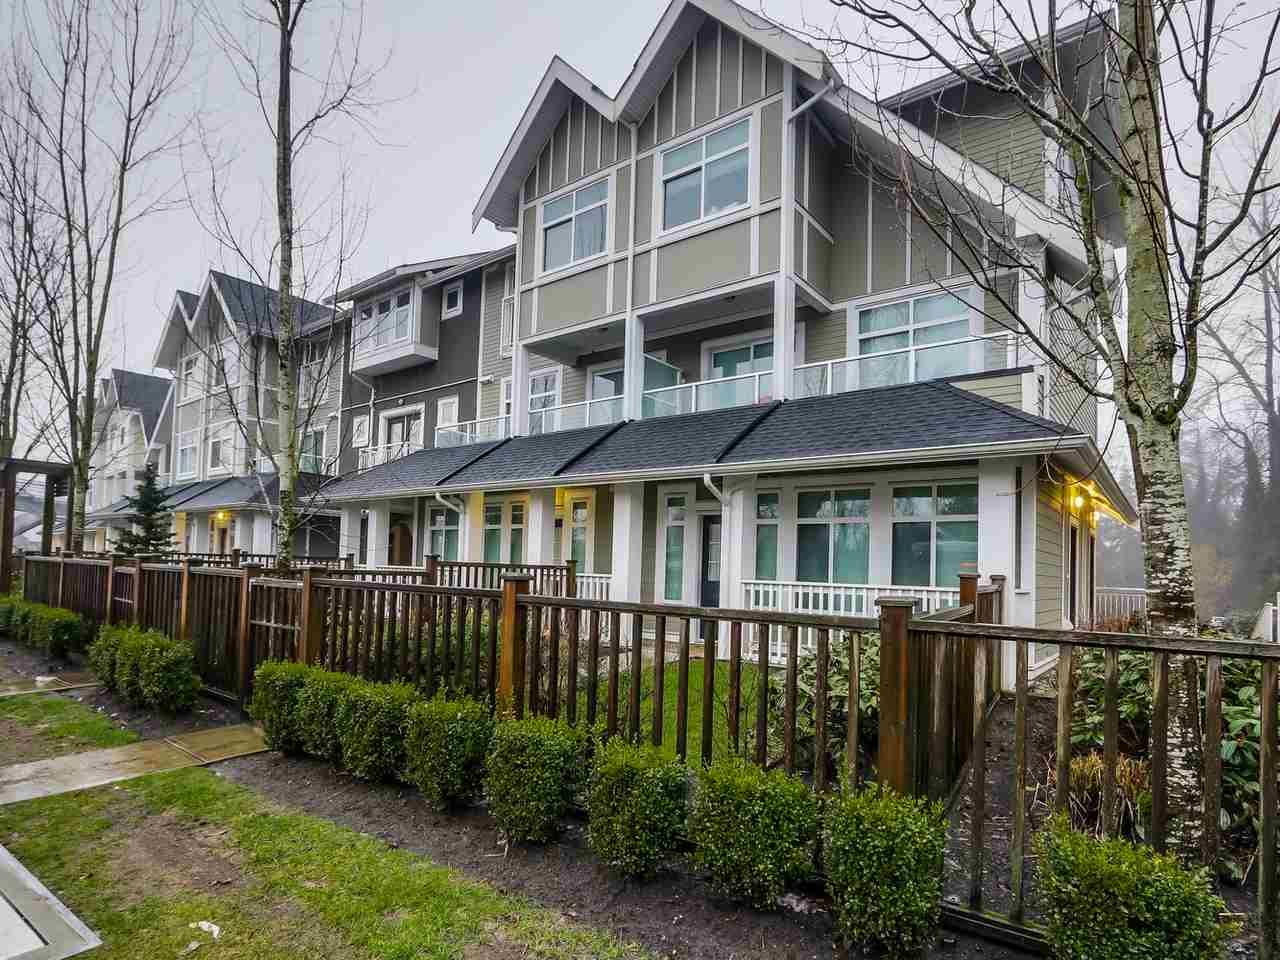 """Main Photo: #42 - 6965 Hastings St, in Burnaby: Sperling-Duthie Townhouse for sale in """"Cassia"""" (Burnaby North)  : MLS®# R2029116"""